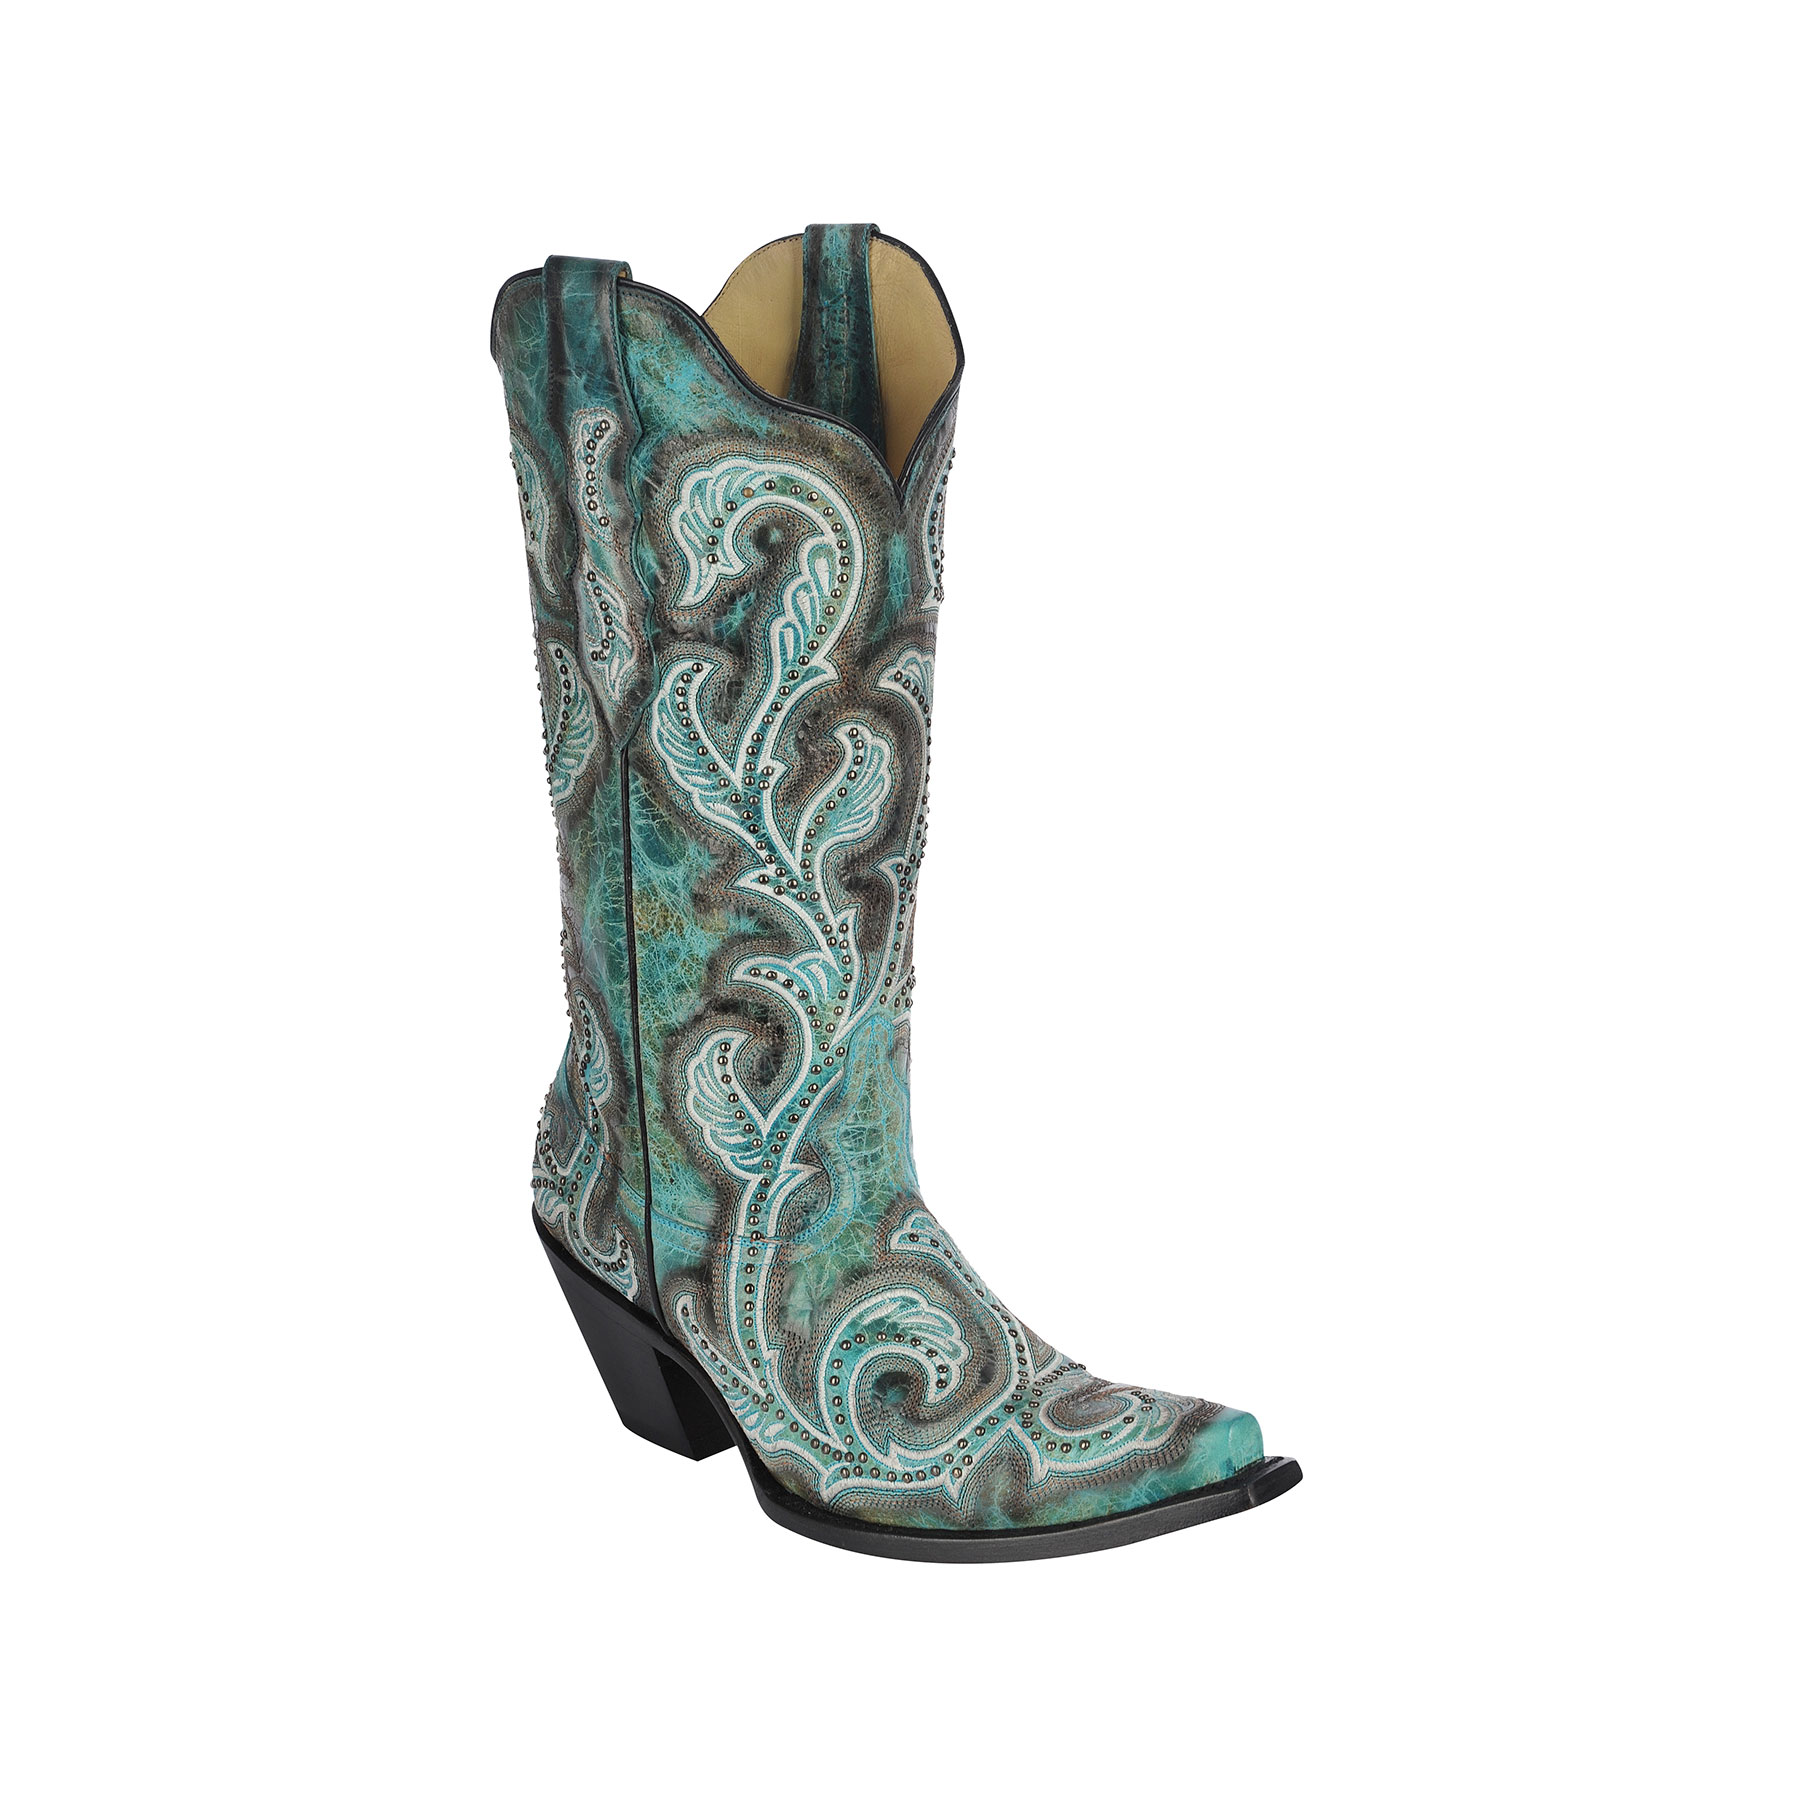 Wonderful Corral Bootsu00ae Ladiesu0026#39; Turquoise Cross With Crystals Boots - Fort Brands